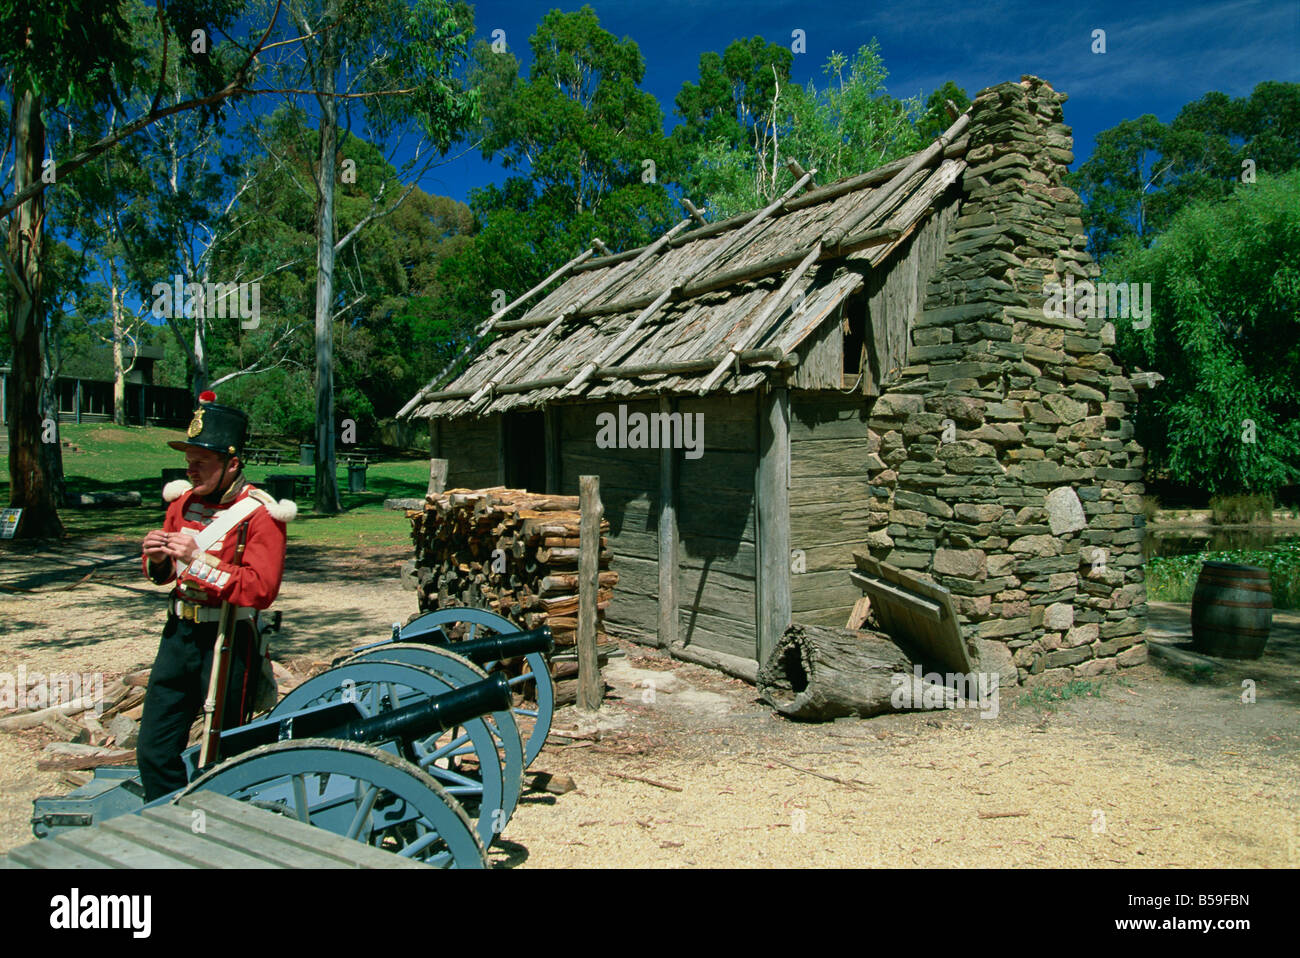 Soldier and cabin in Sovereign Hill, the re-creation of an 1860s gold mining township near Ballarat, Victoria, Australia - Stock Image